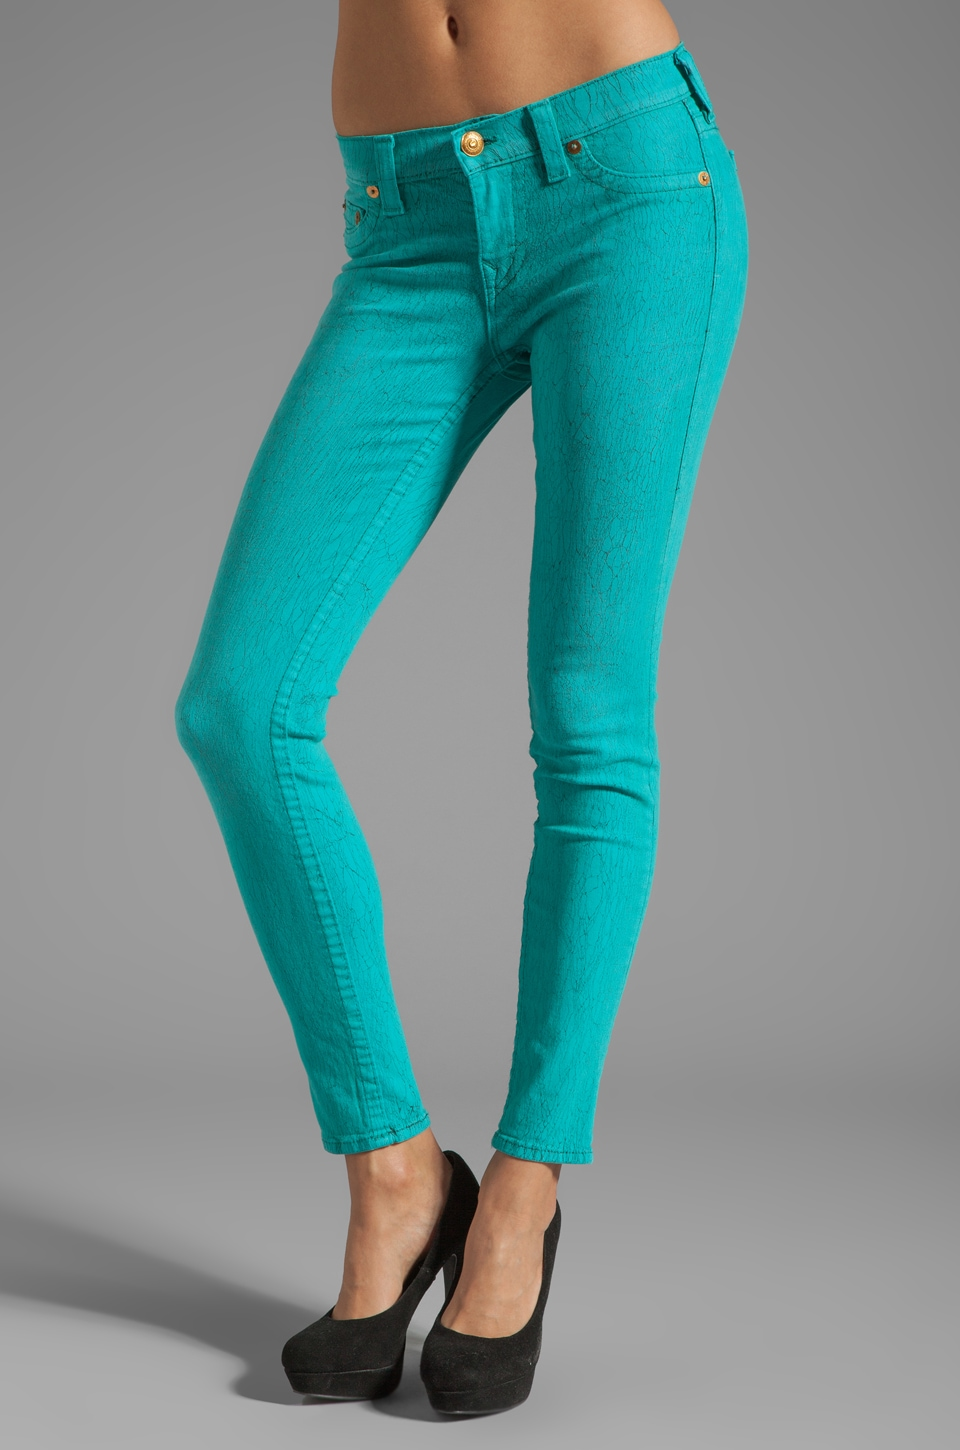 True Religion Halle Crinkle Print Skinny in Turquoise